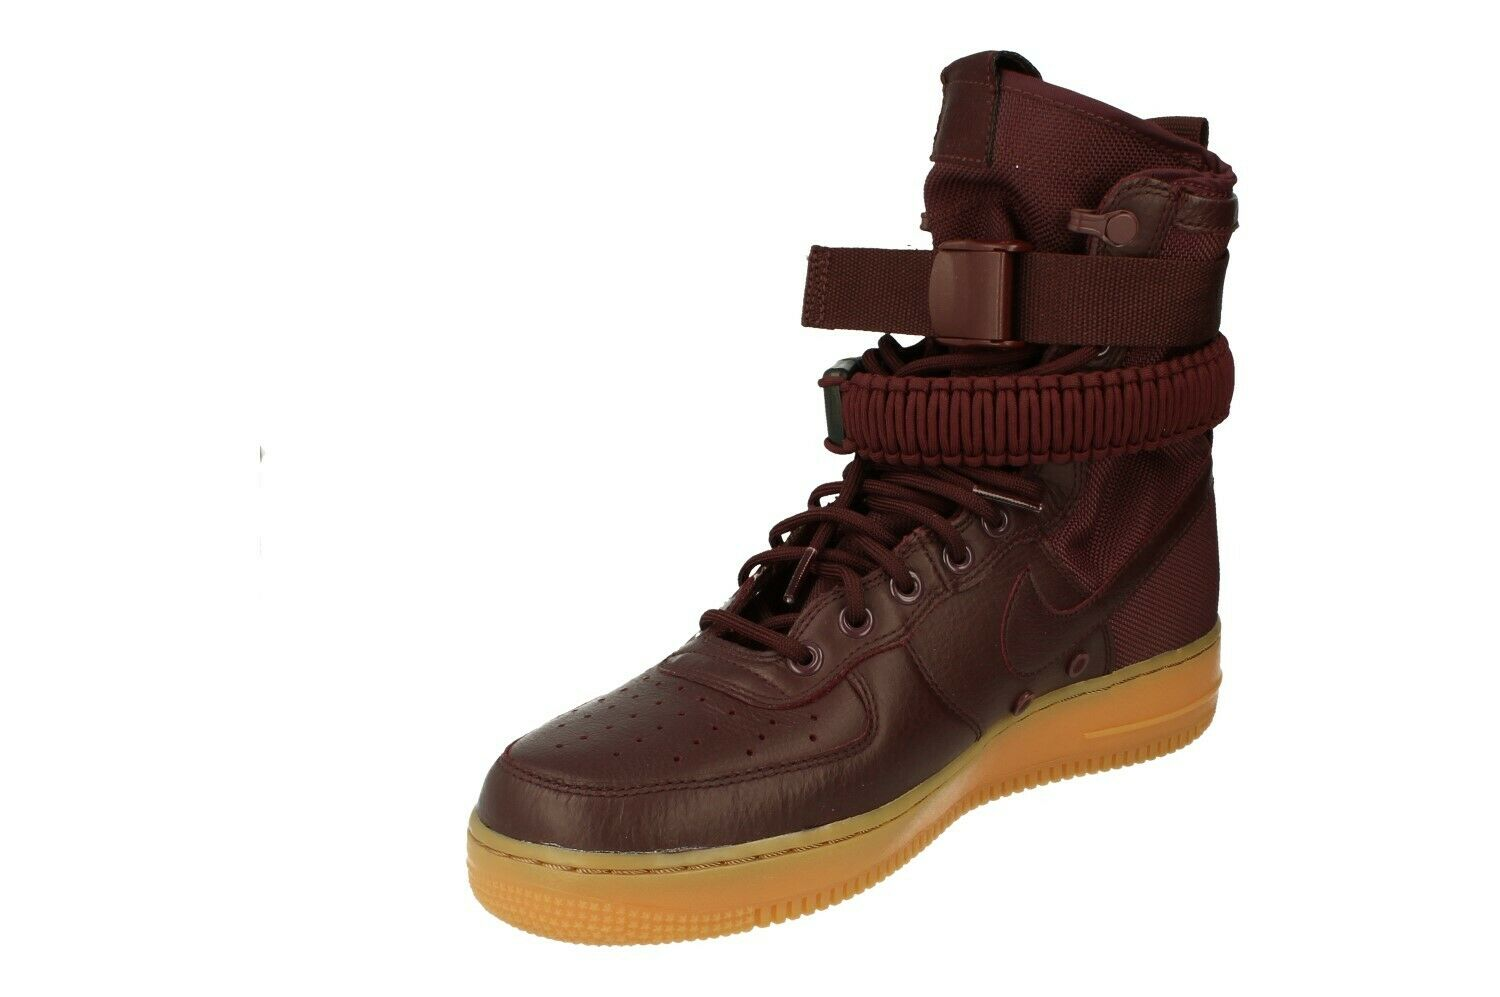 Nike Sf Air Force 1 Af1 Mens Hi Top Trainers 864024 Sneakers shoes 600